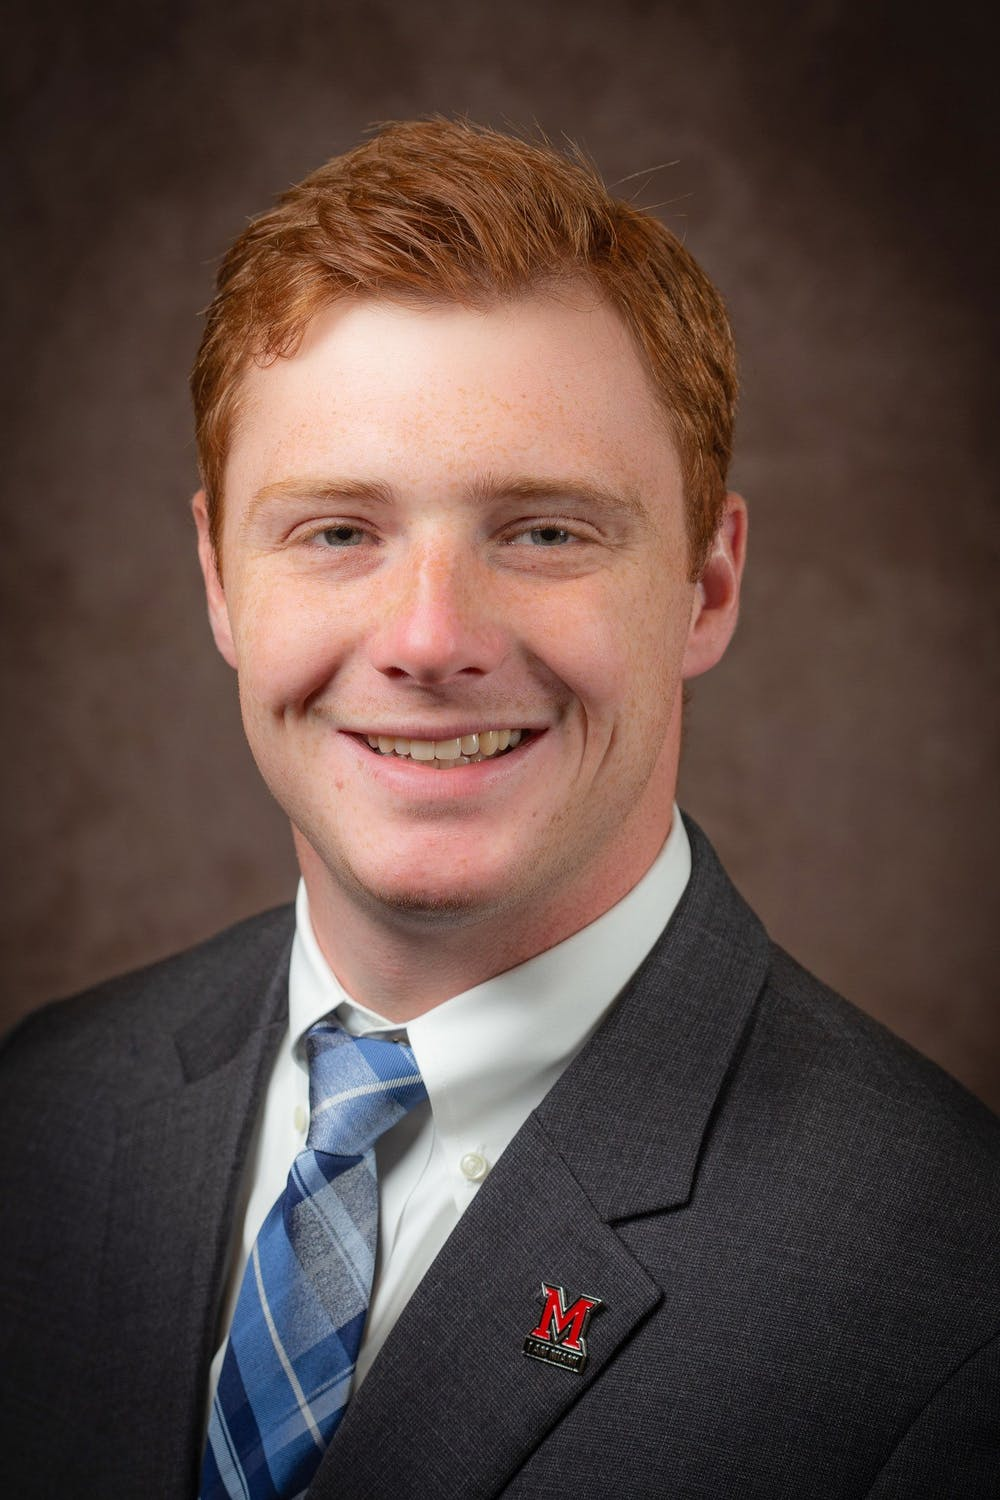 <p>Student Trustee Will Kulis is graduating, and his position on Miami University&#x27;s Board of Trustees is ready to be filled by an underclassman. </p>